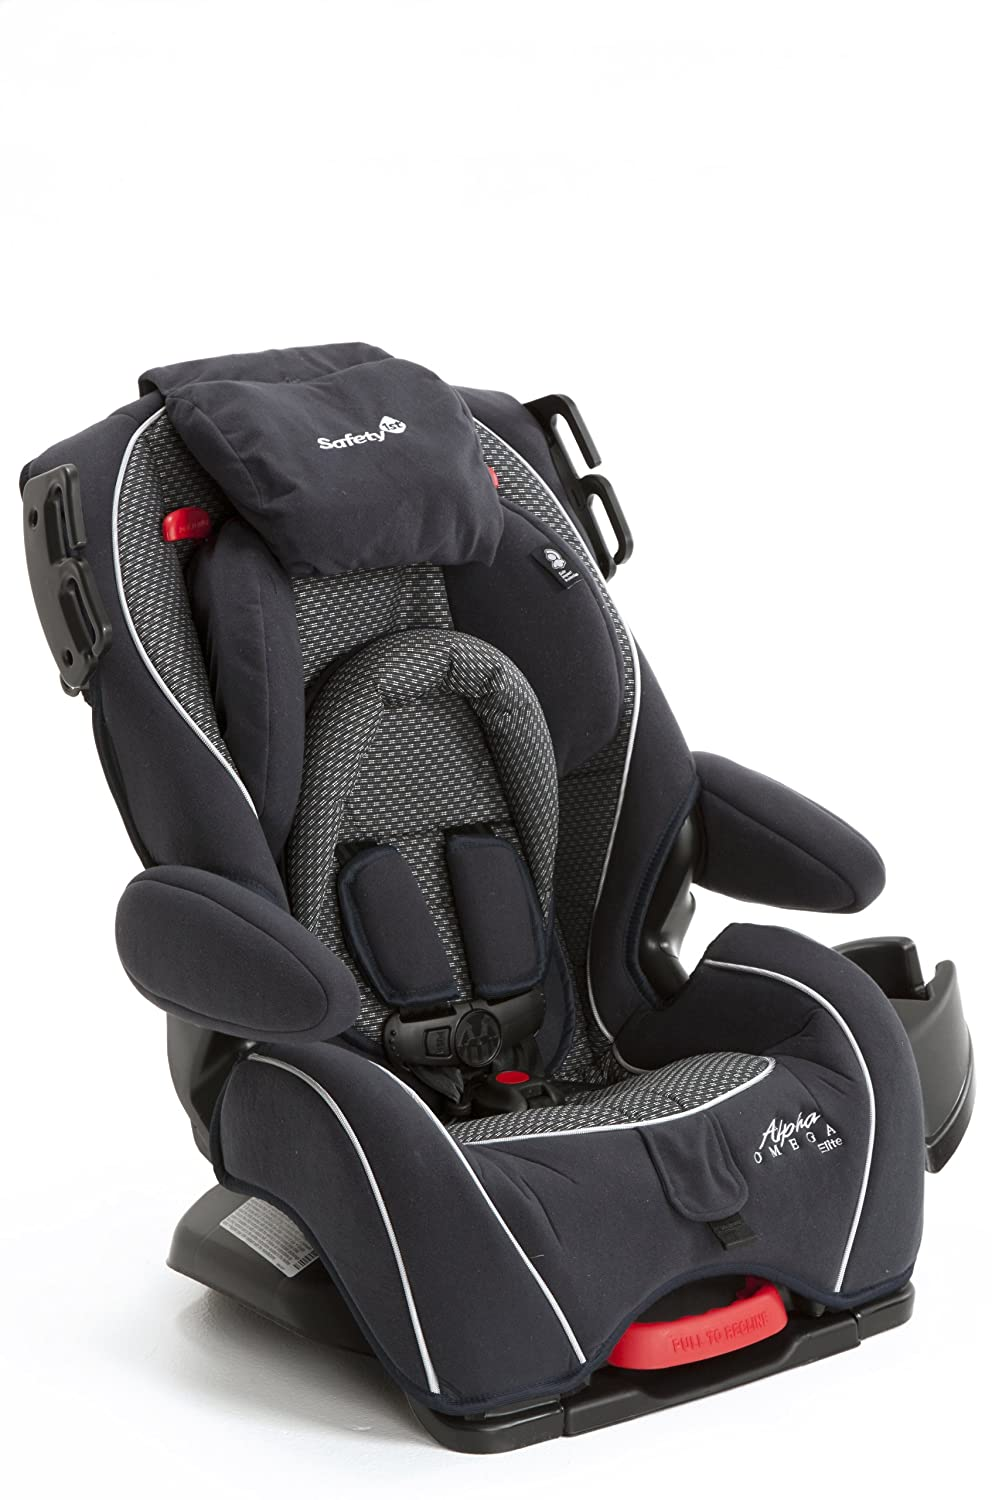 Finding The Best Travel Car Seat: 5 Reviews And Ultimate Guide 4